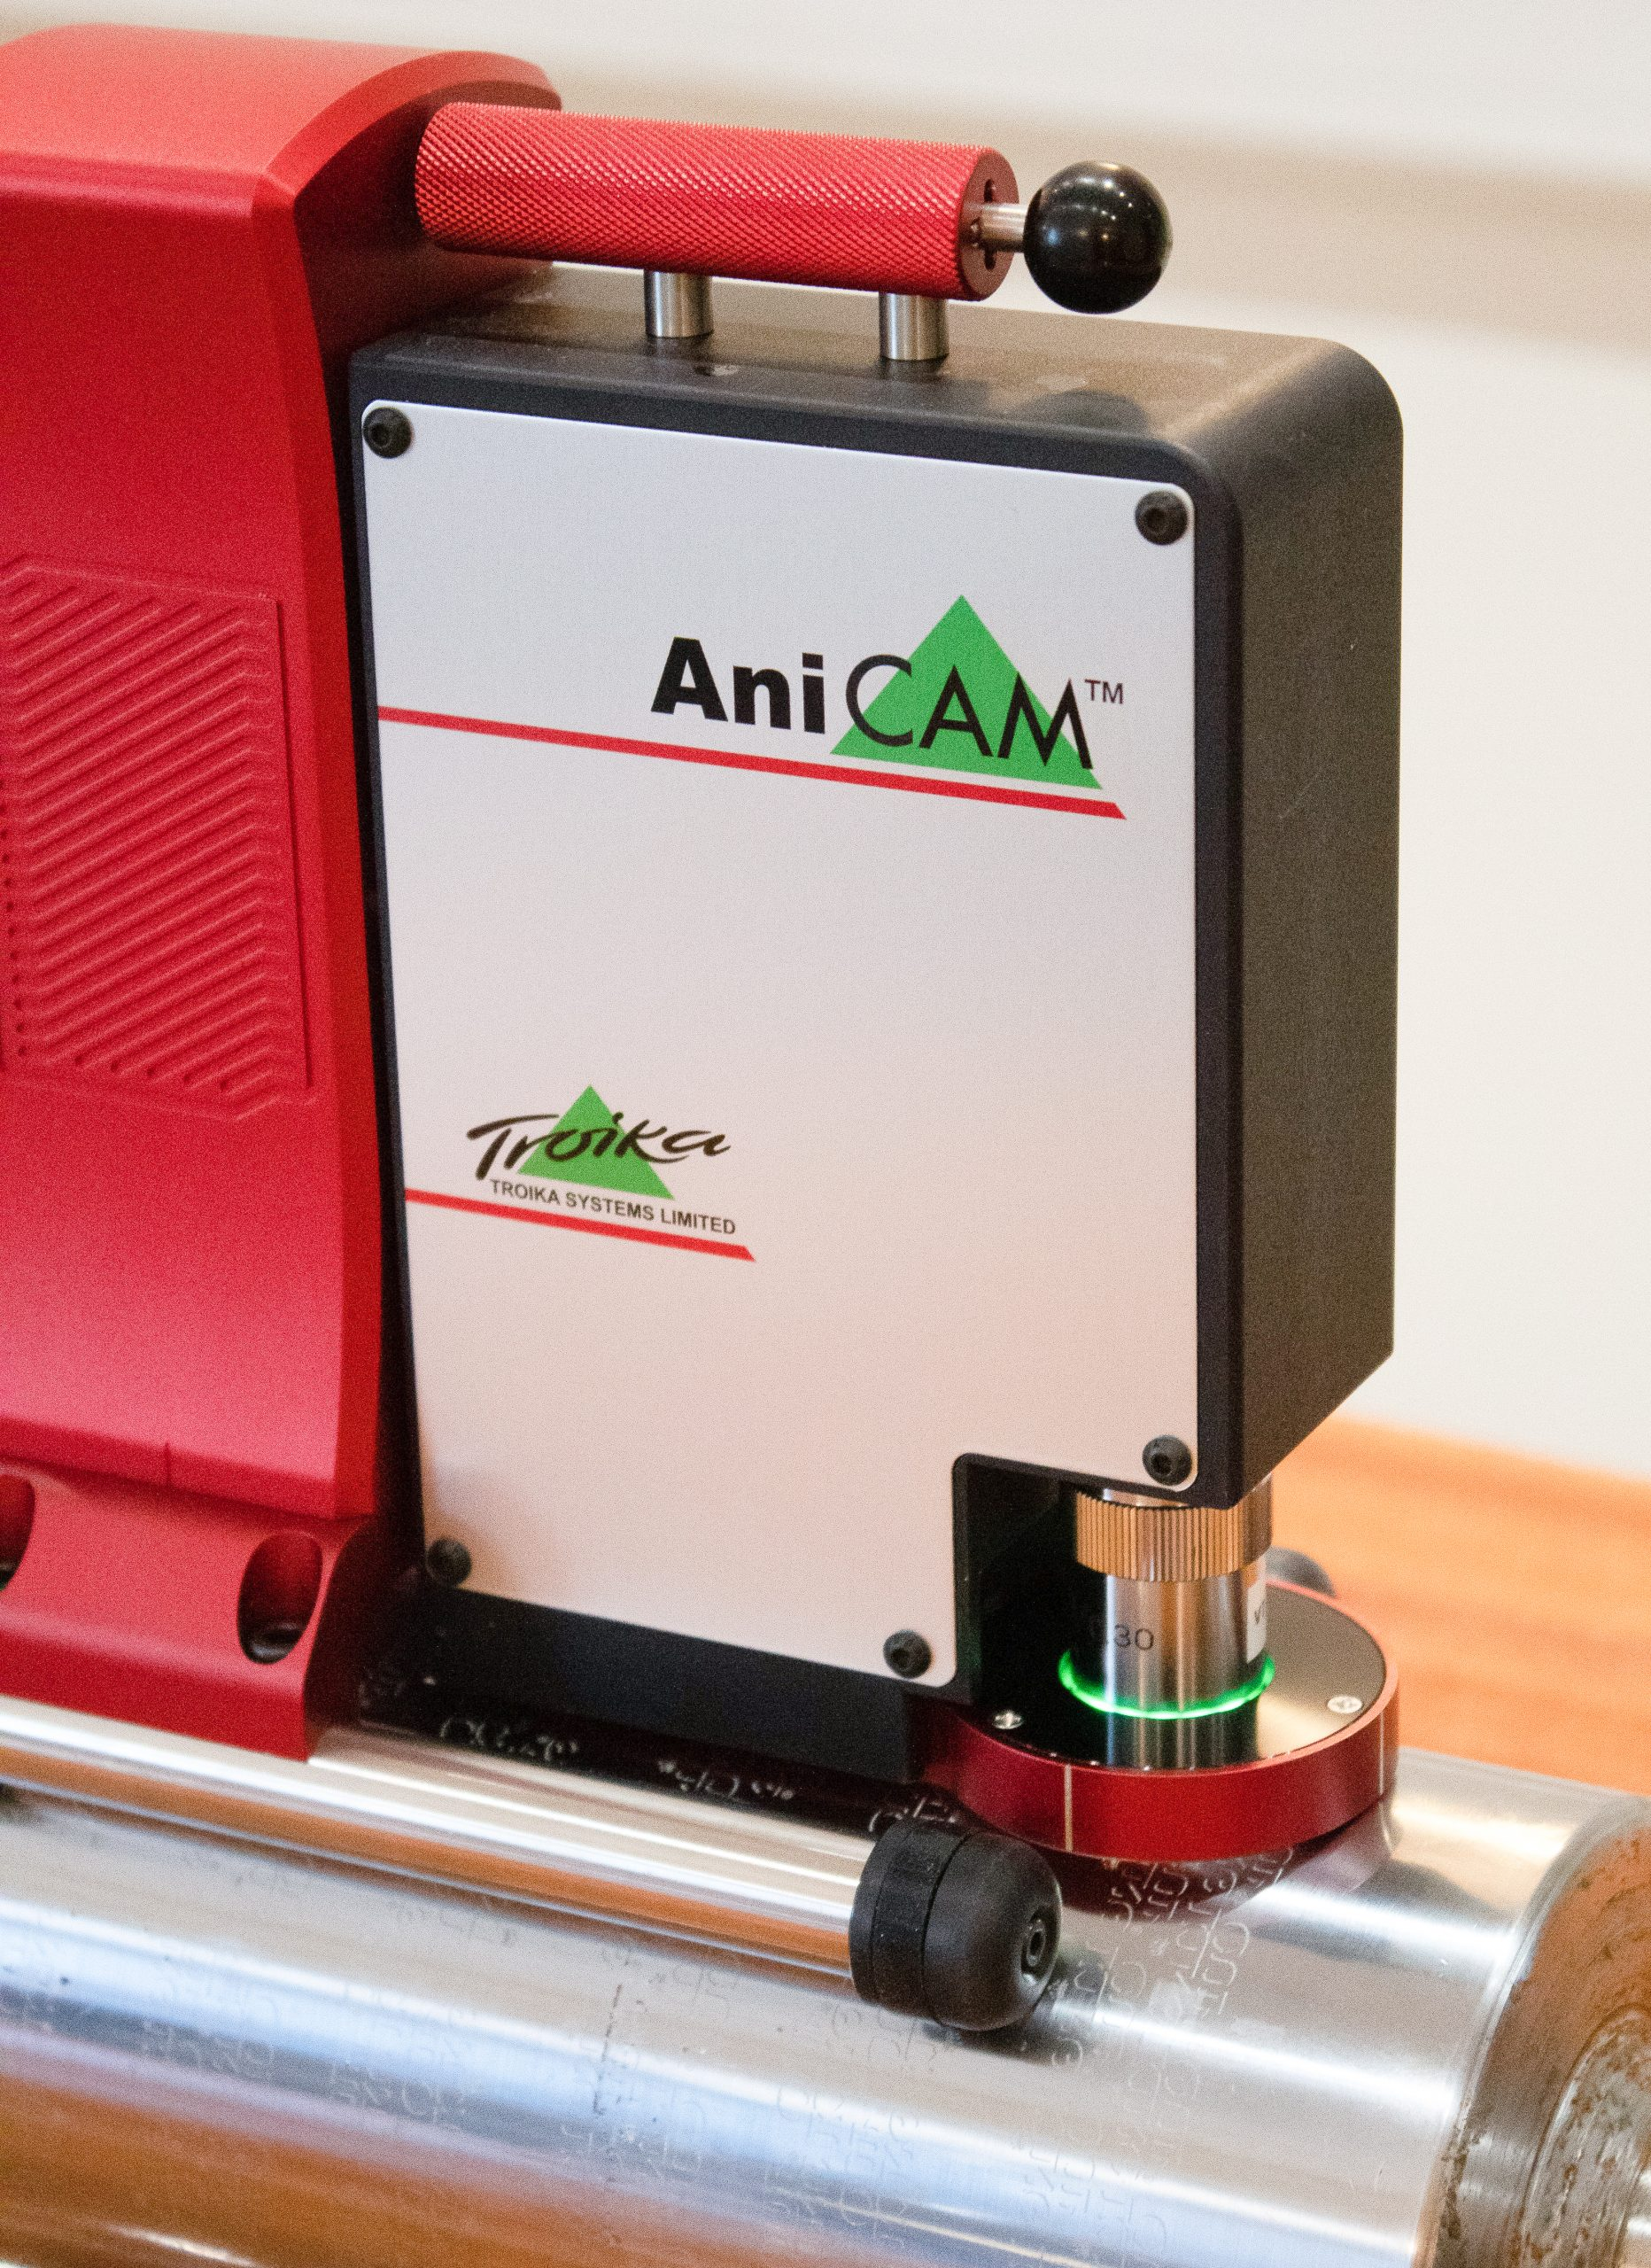 An up close photo of the AniCam device in which Alphasonics use to measure the readings of Anilox Rolls.